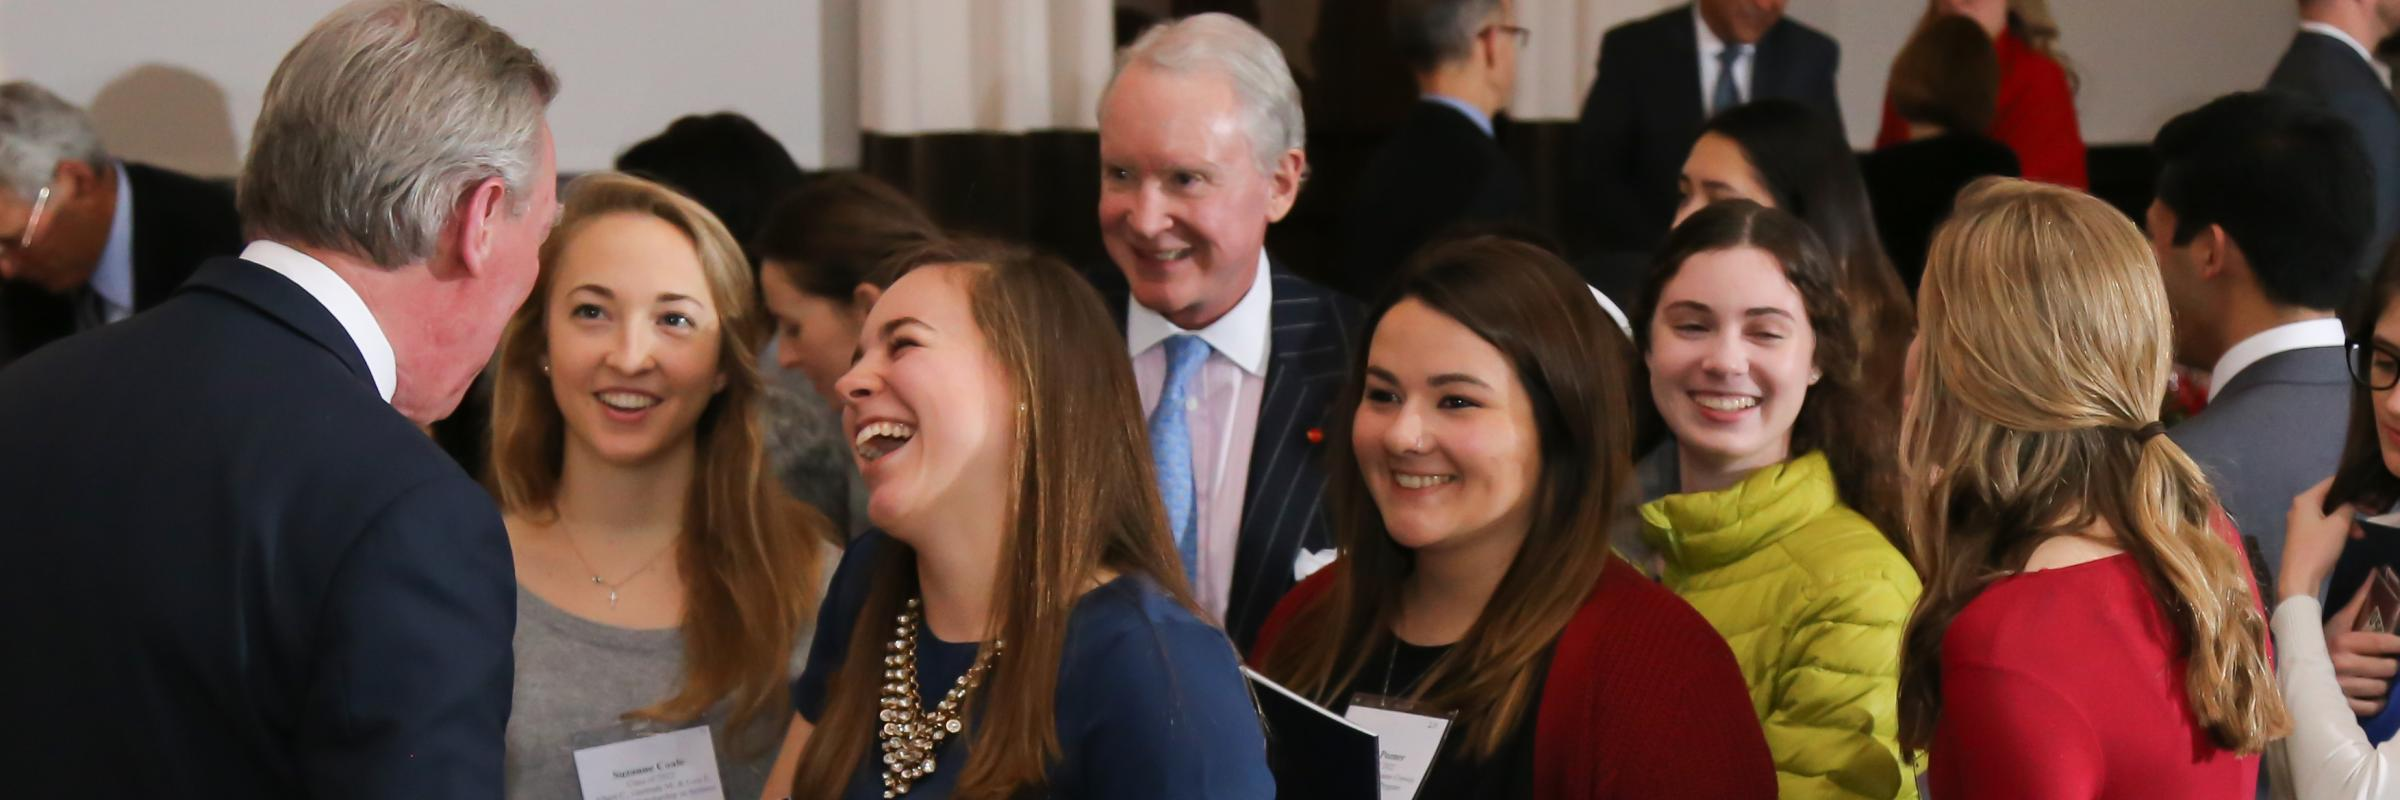 Scholarship students excited to meet President Garvey